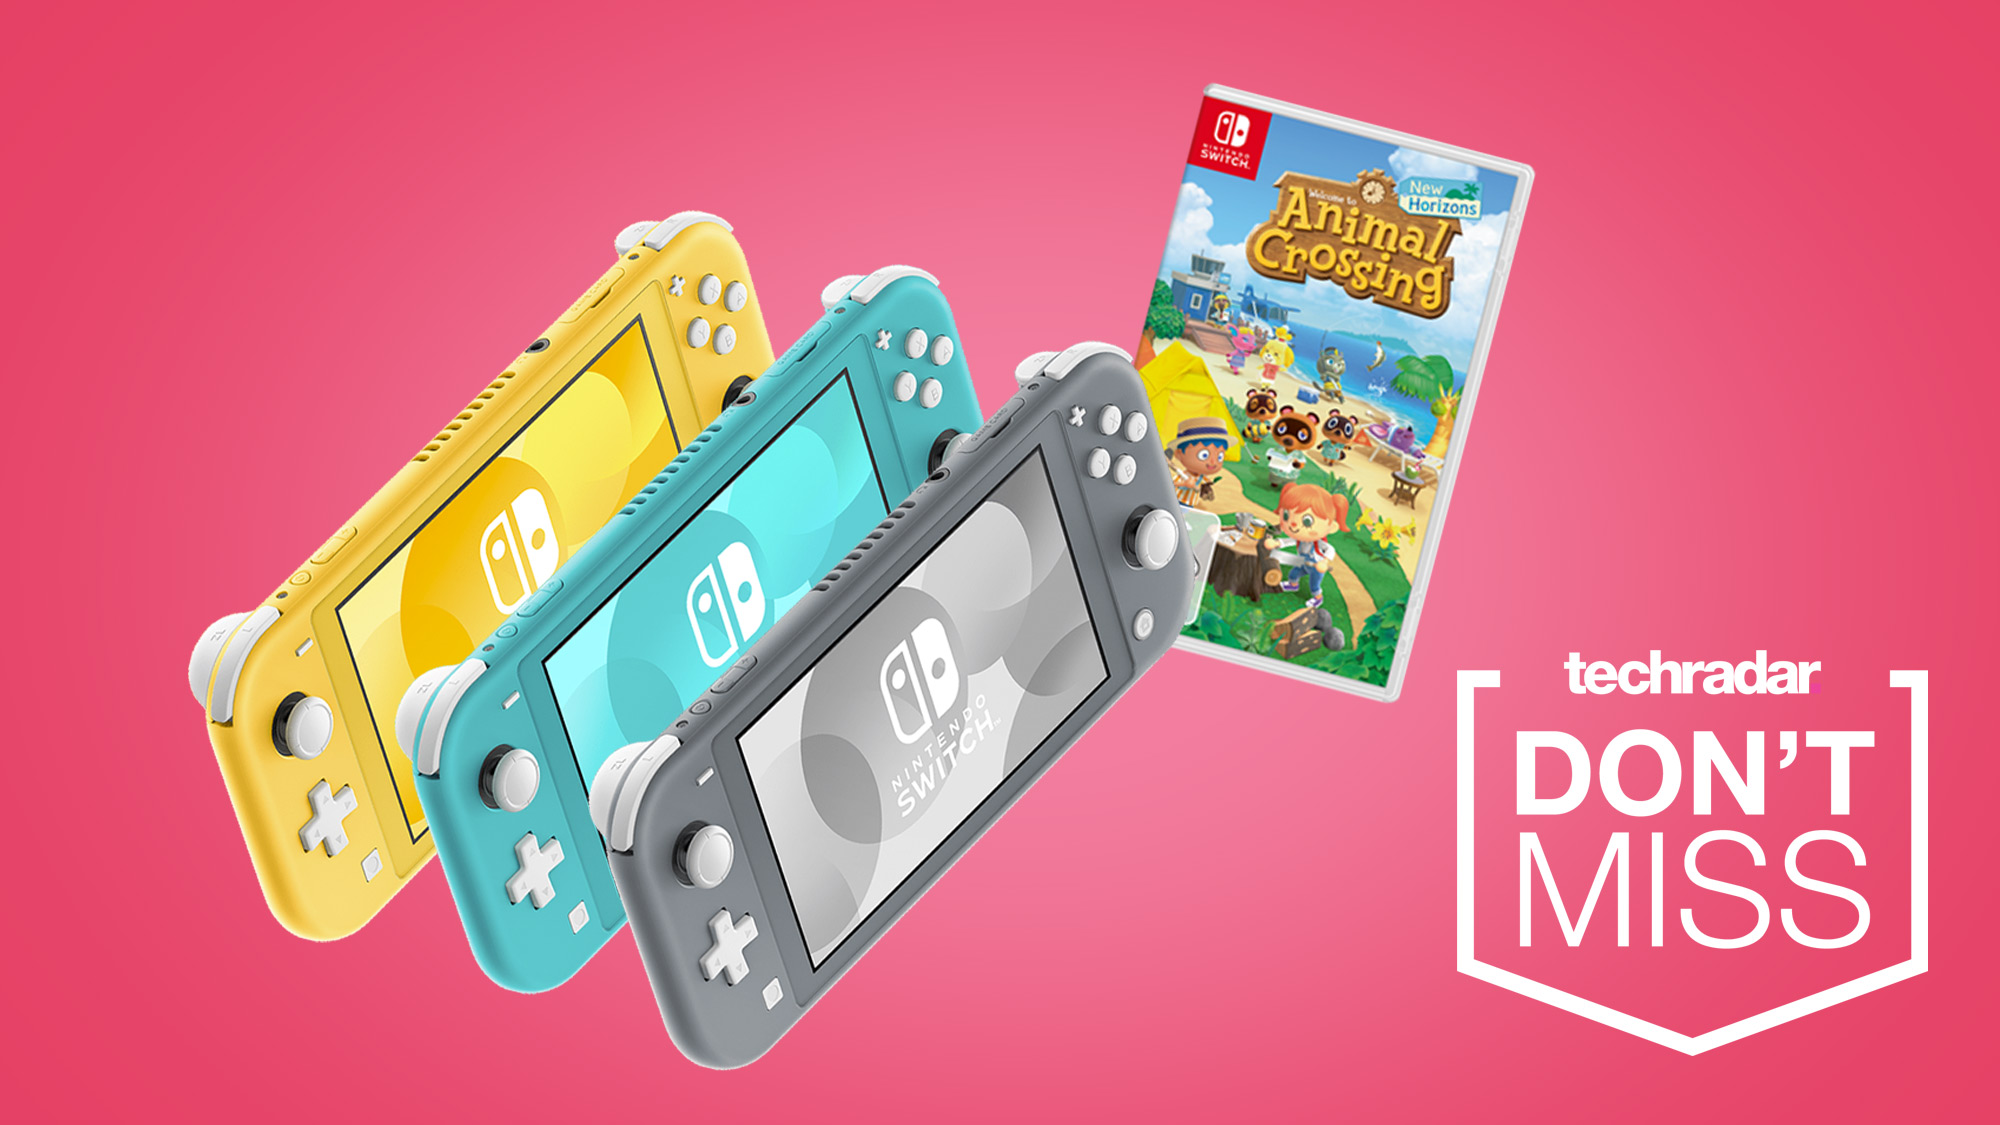 Nintendo Switch Lite deals return with stock available on Animal Crossing: New Horizons bundles